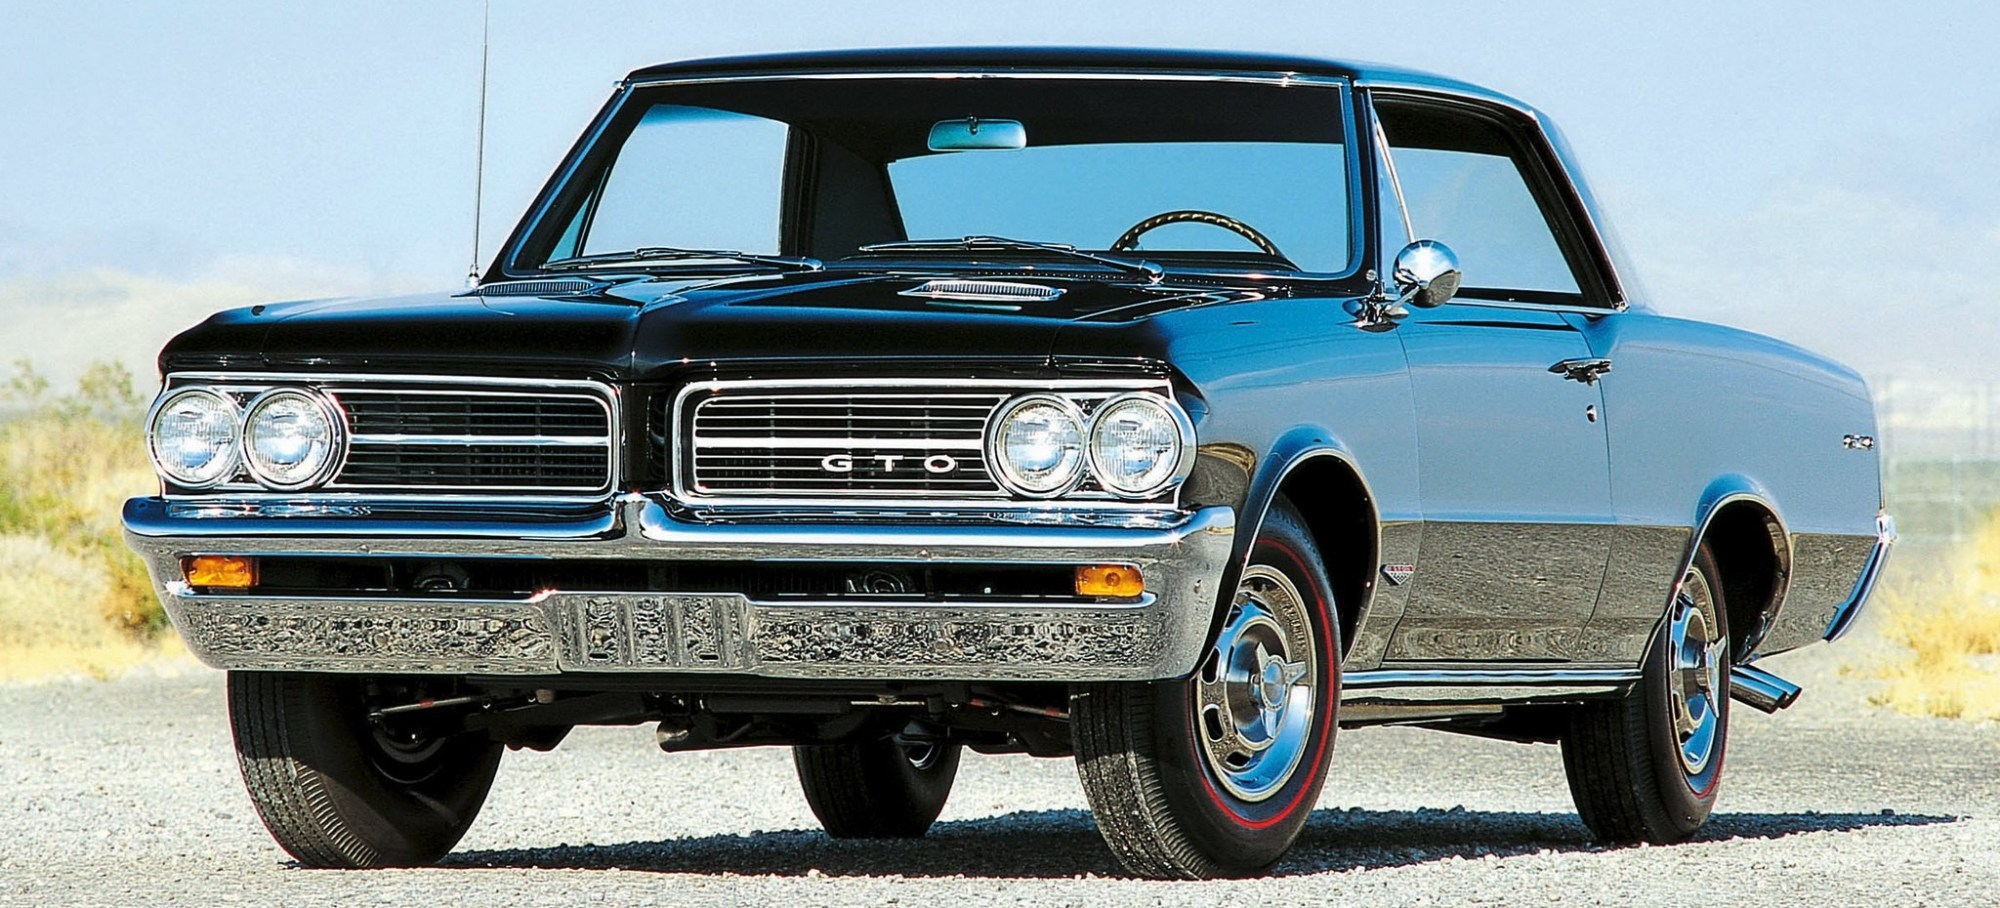 hight resolution of in 1965 the good thing continued but with even better styling from its new double decker headlight and dual front grille design